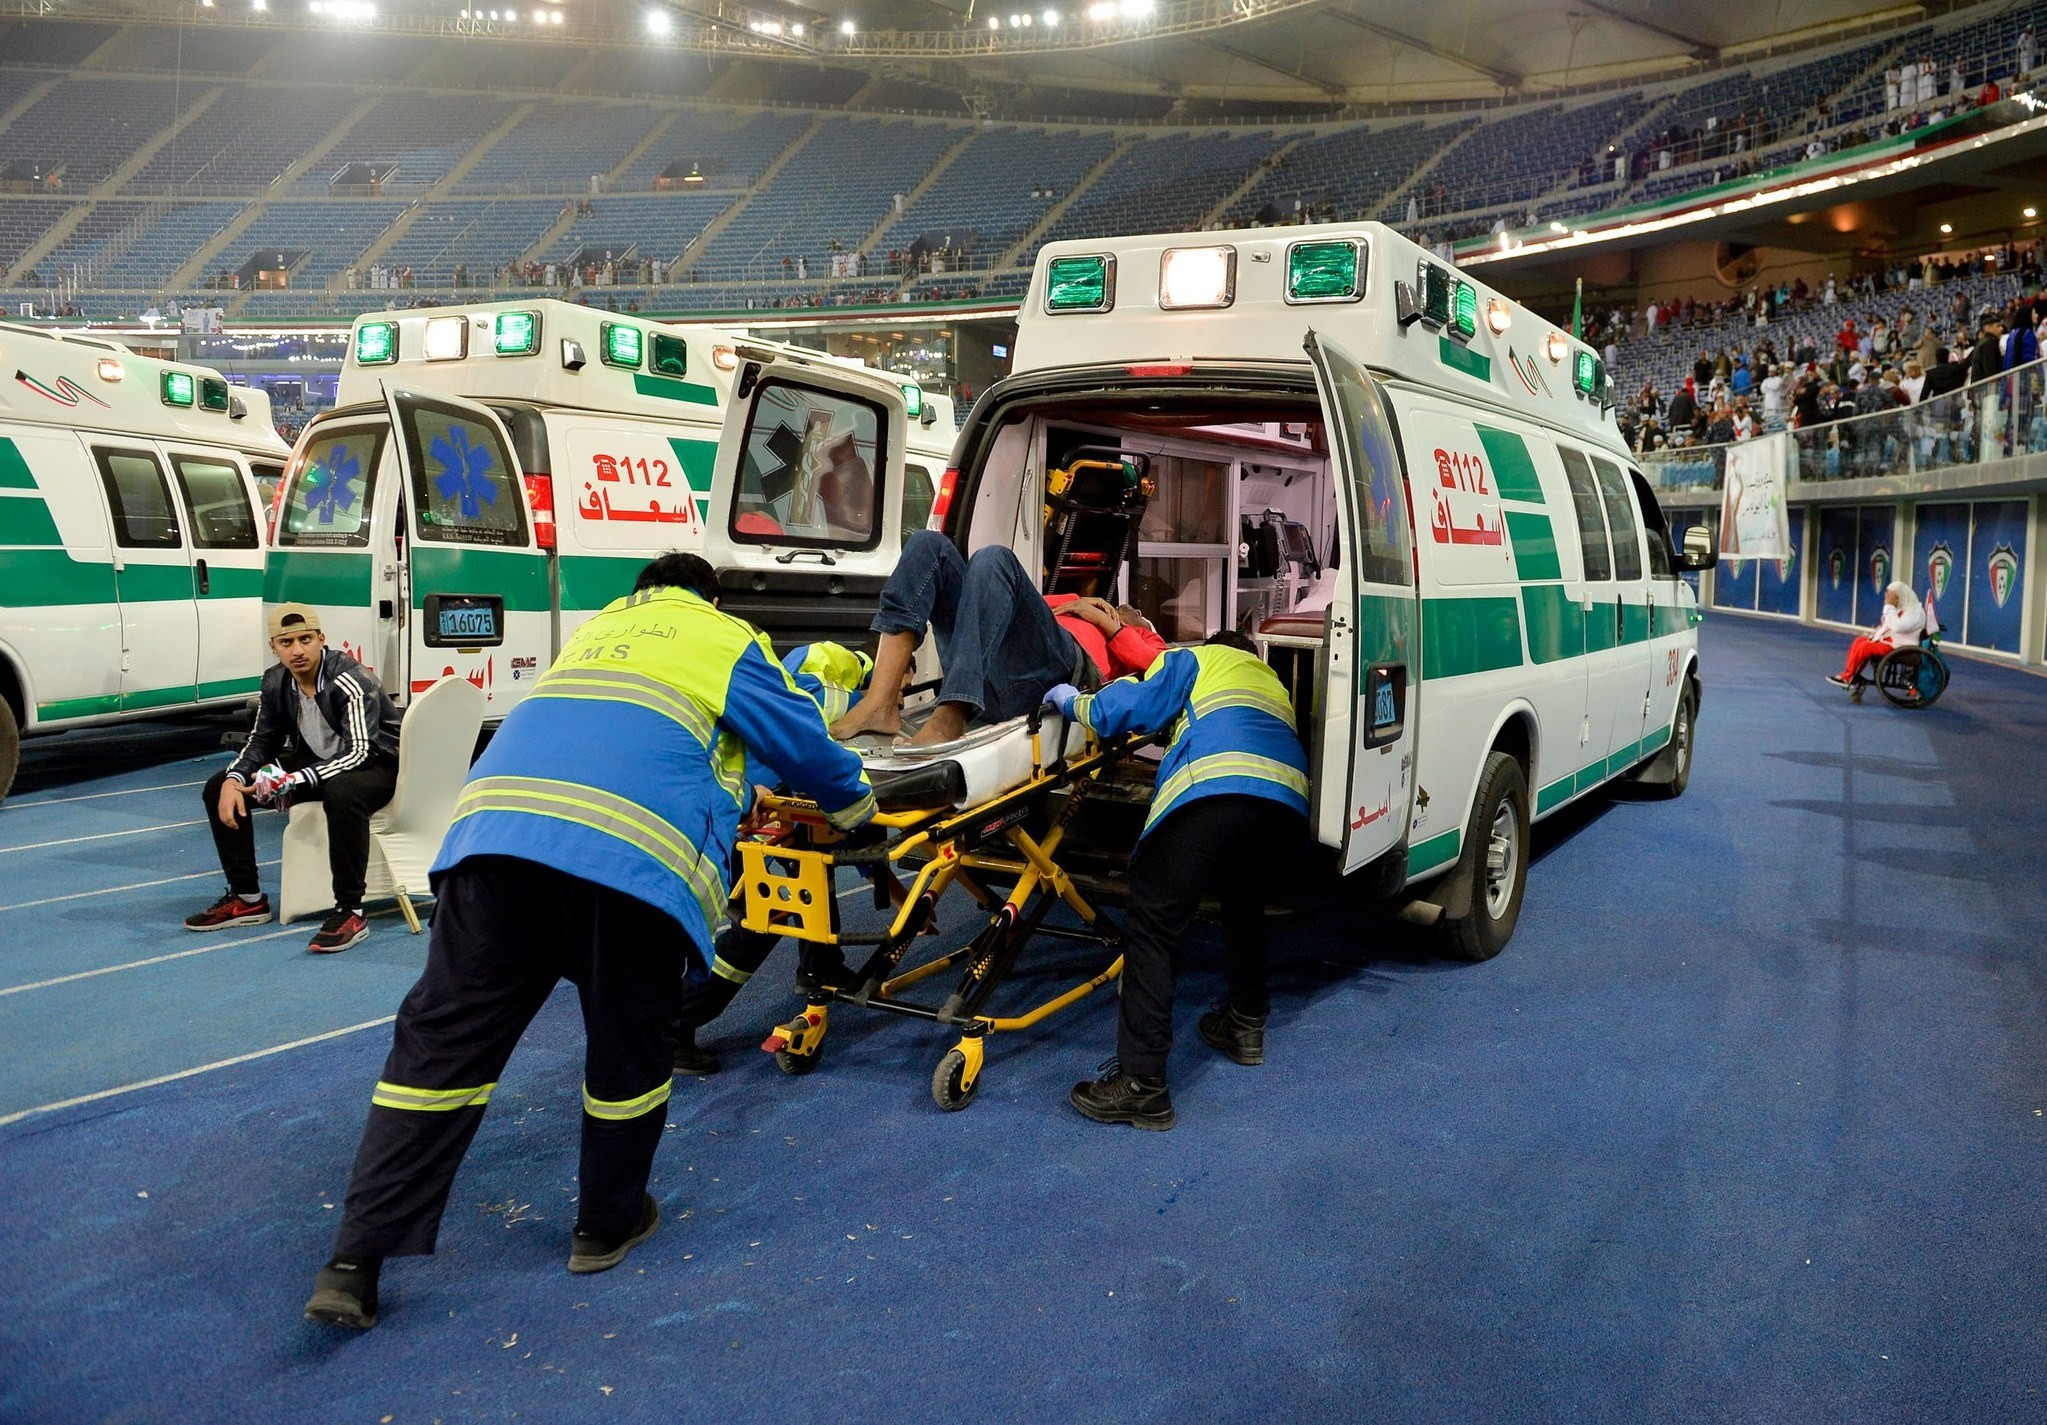 Medical staff treat injured fans after a glass barrier broke at the end of the Gulf Cup of Nations soccer Final match between Oman and UAE at Jaber Al-Ahmad International Stadium, Kuwait City, Kuwait, 05 January 2018. Oman won 5-4 in penelty shootout